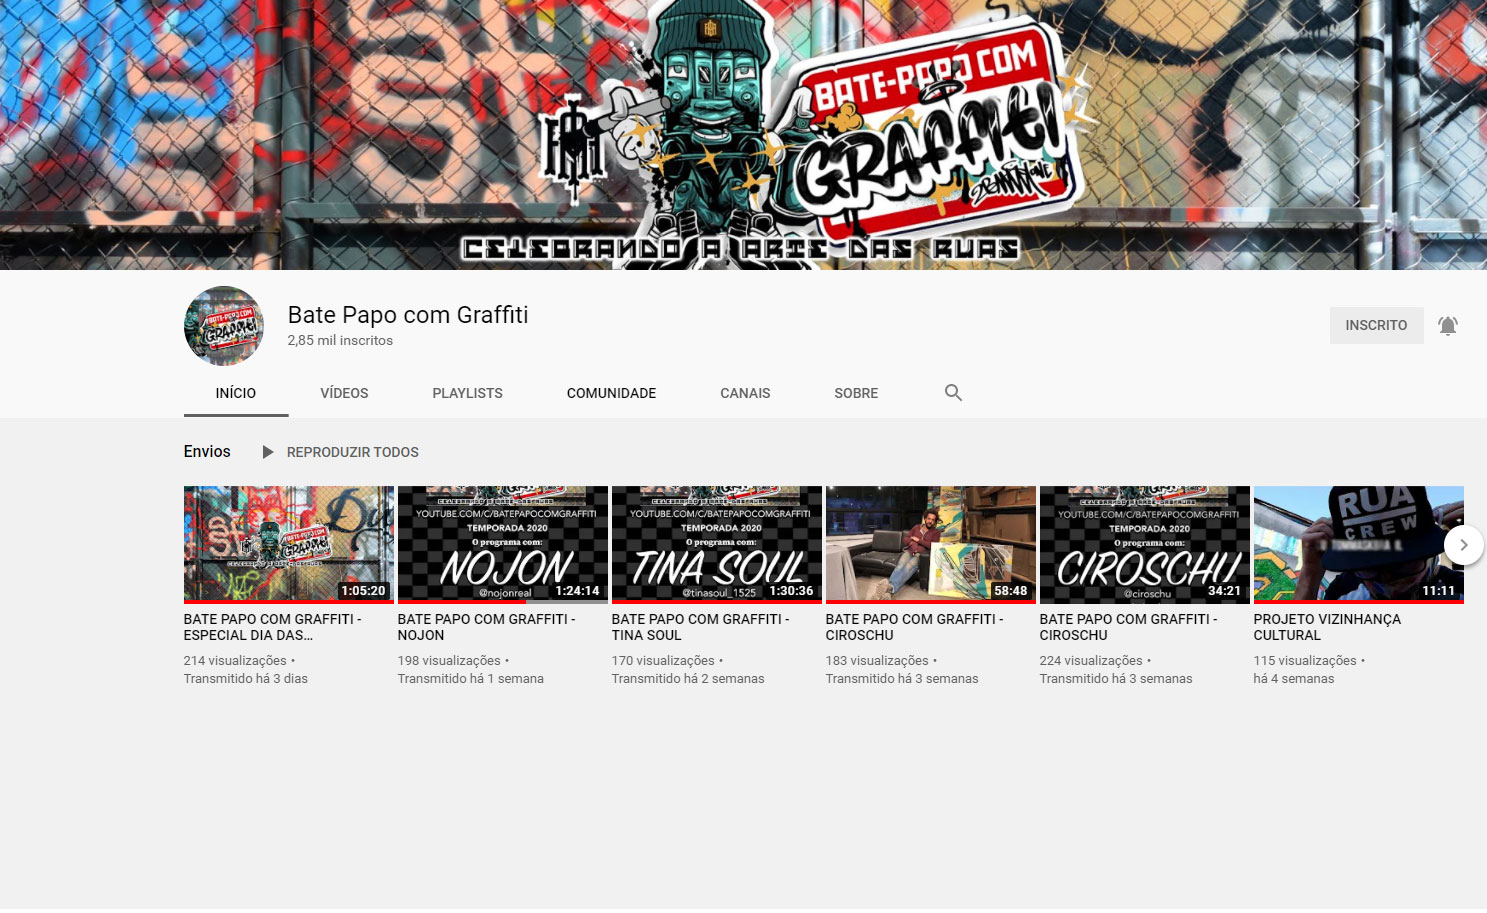 Youtube Bate Papo com Graffiti